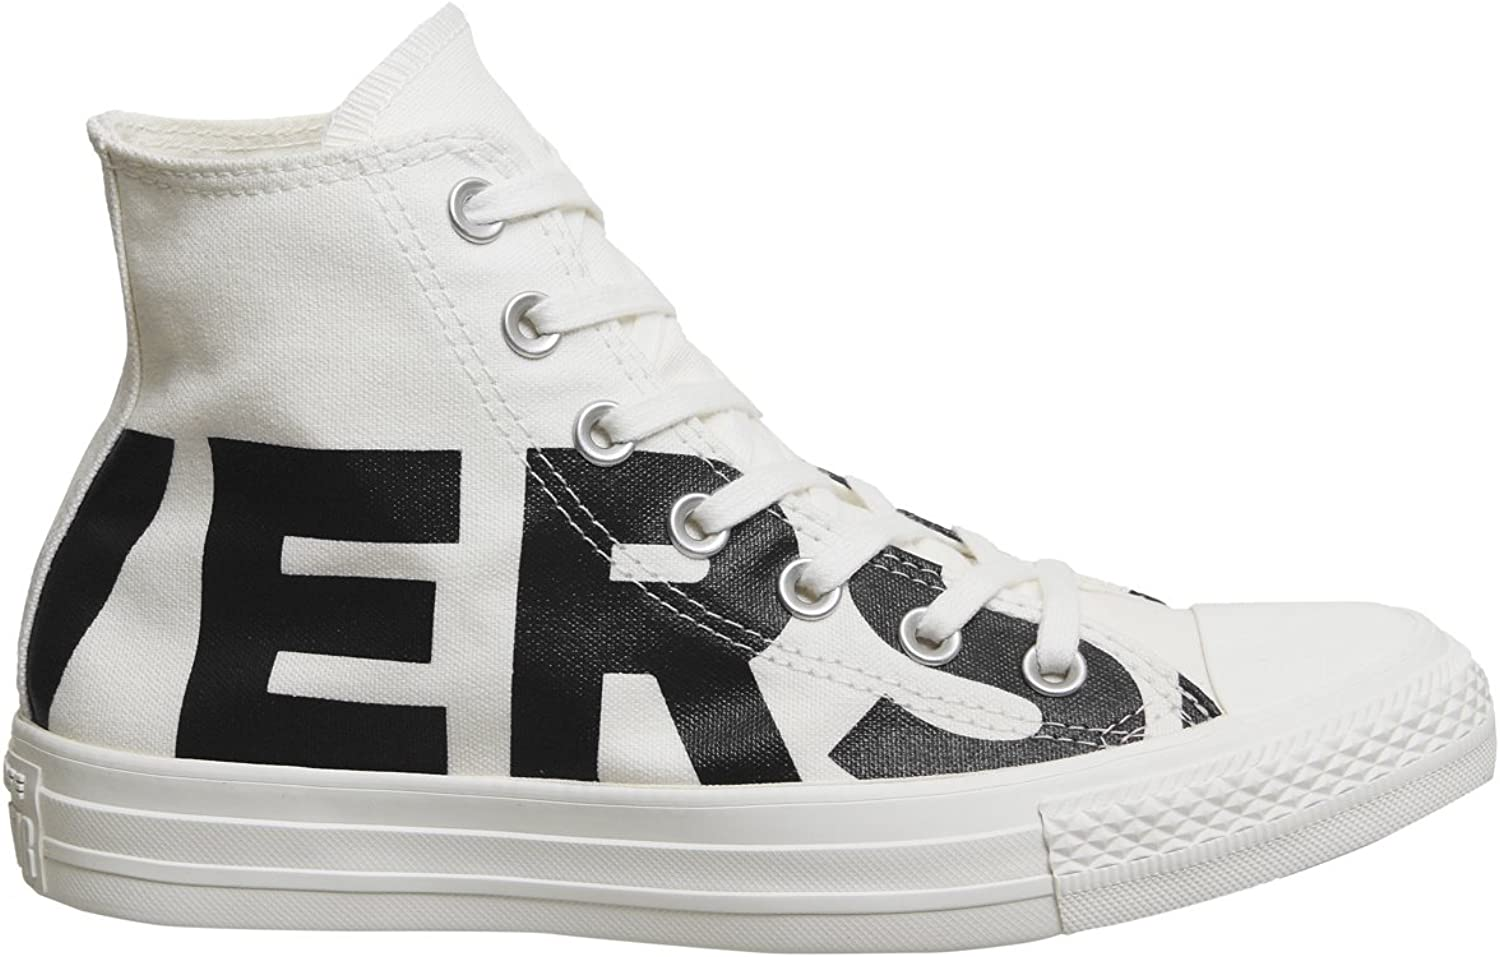 Converse Unisex Adults' 159533 Chuck Taylor All Star Trainers